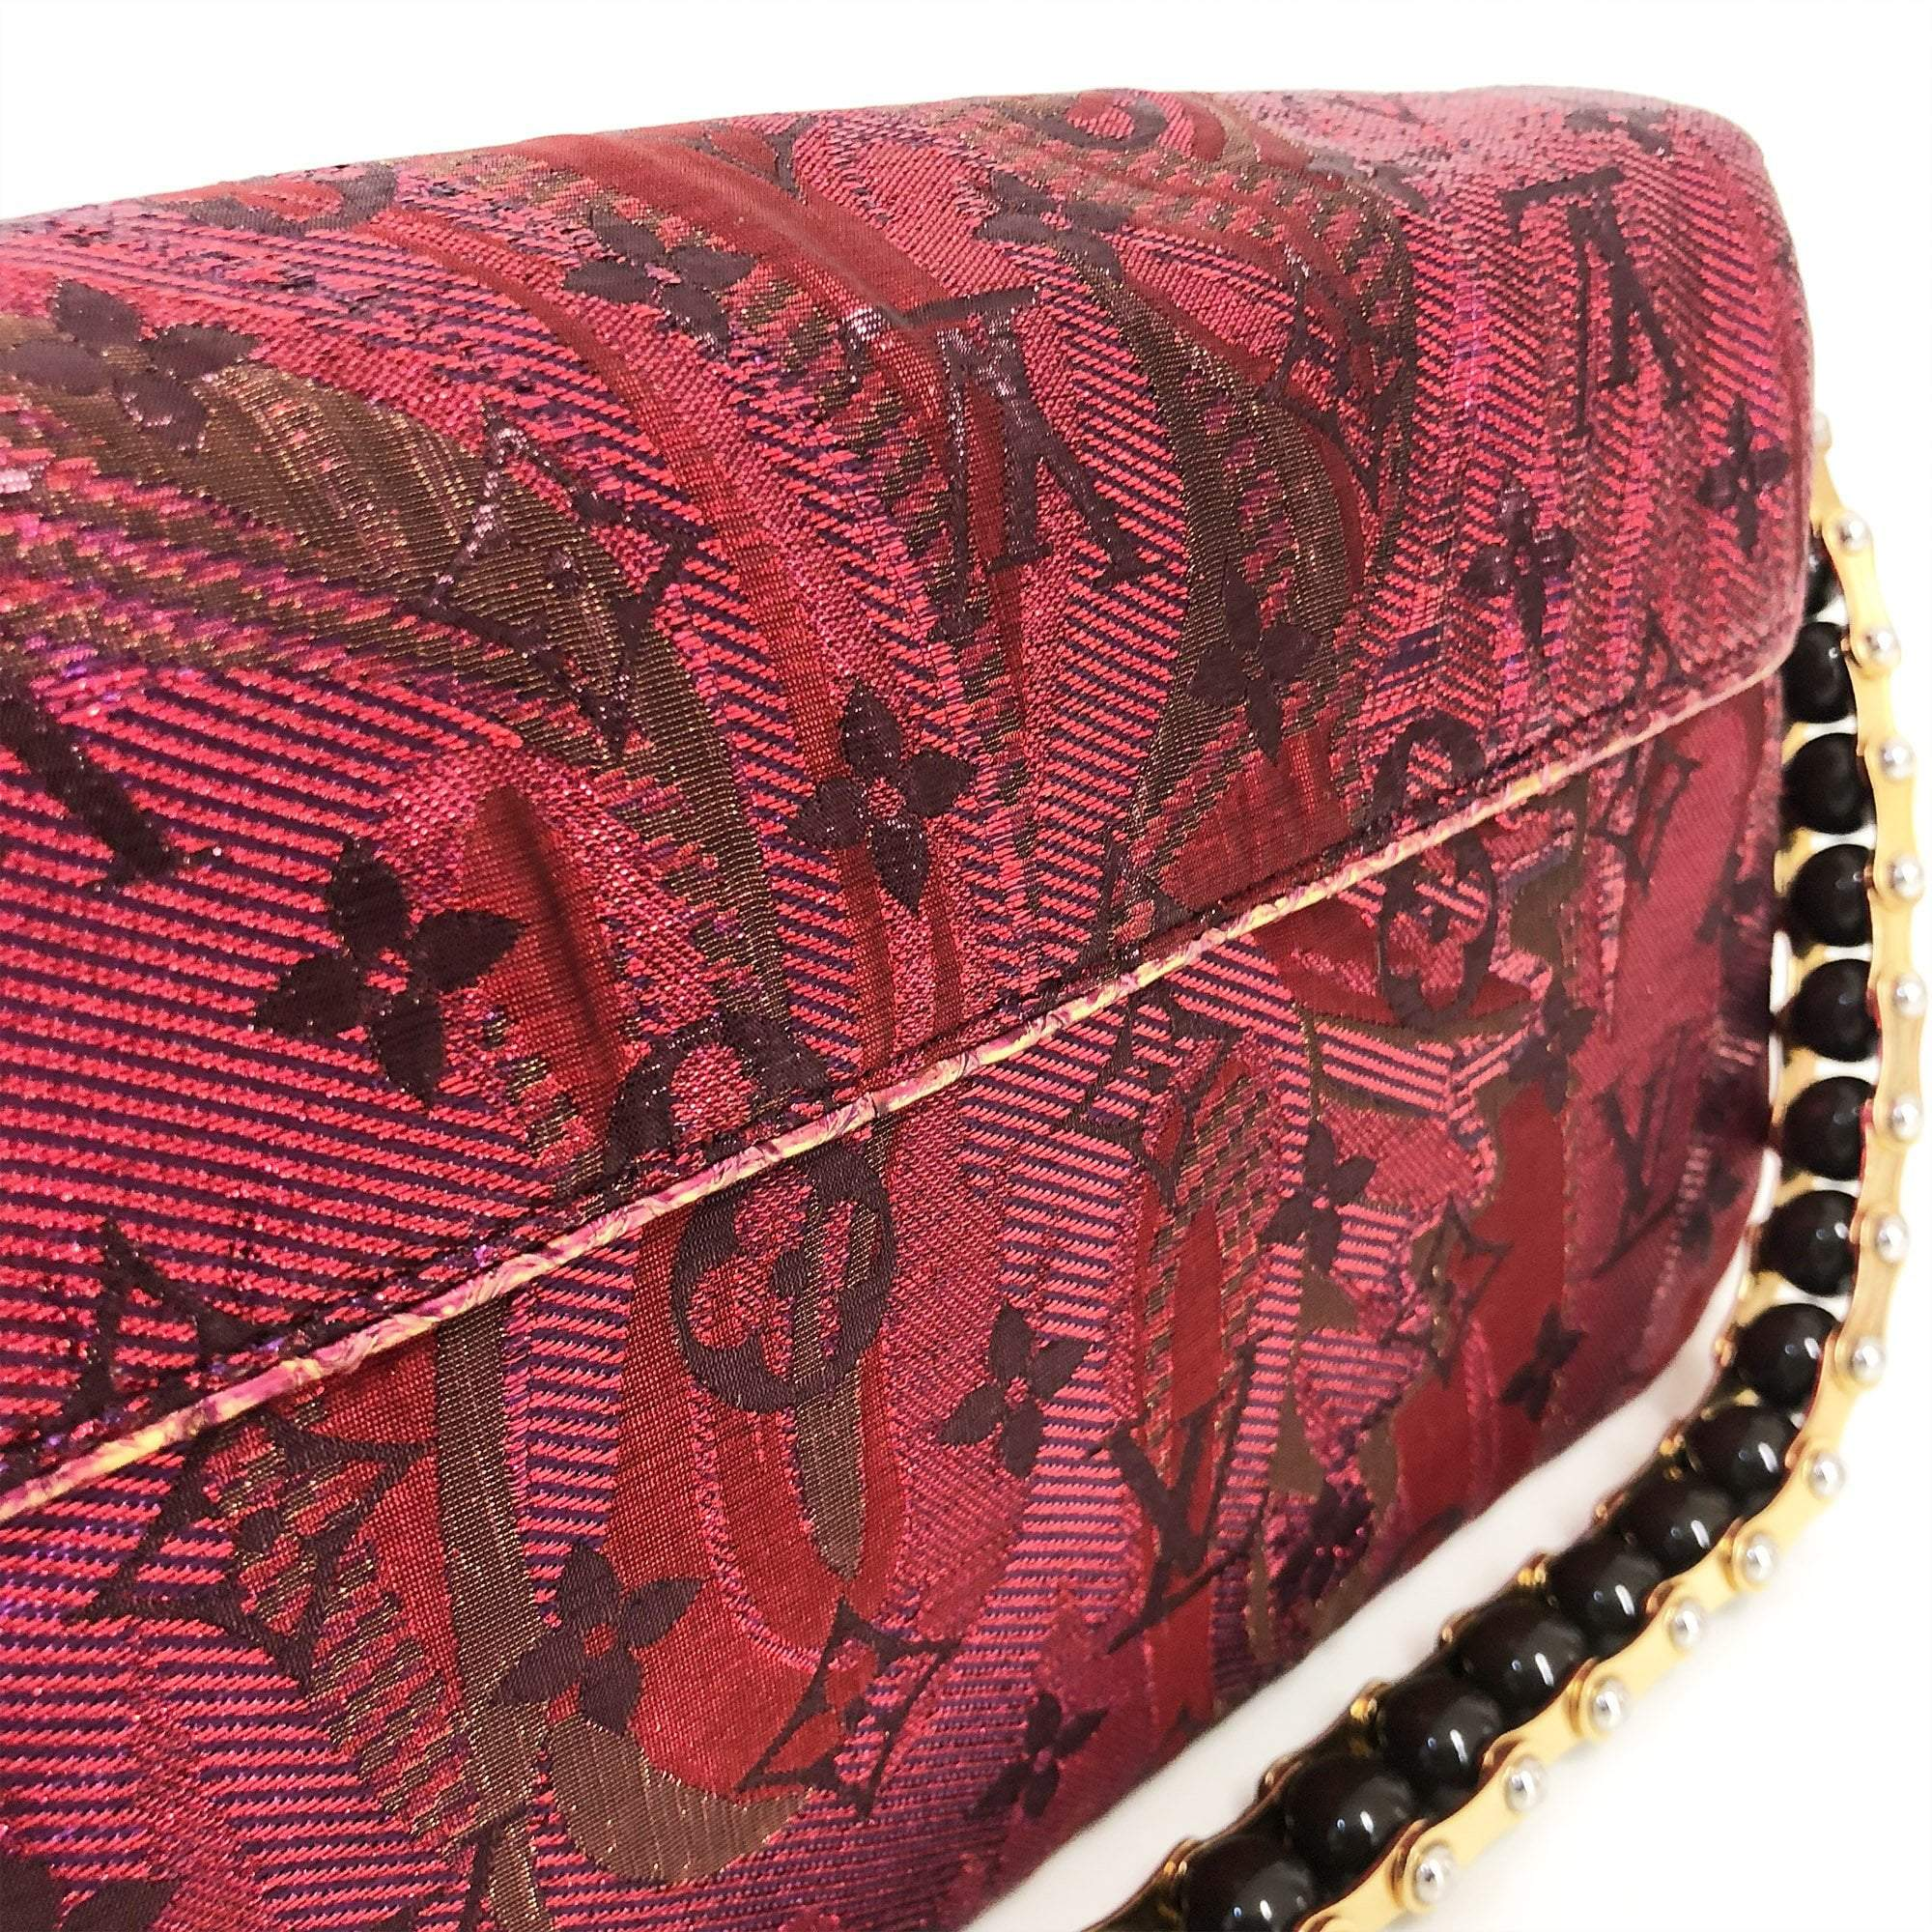 Louis Vuitton Multicolor Monogram Limited Edition Brocade Calliope Bag